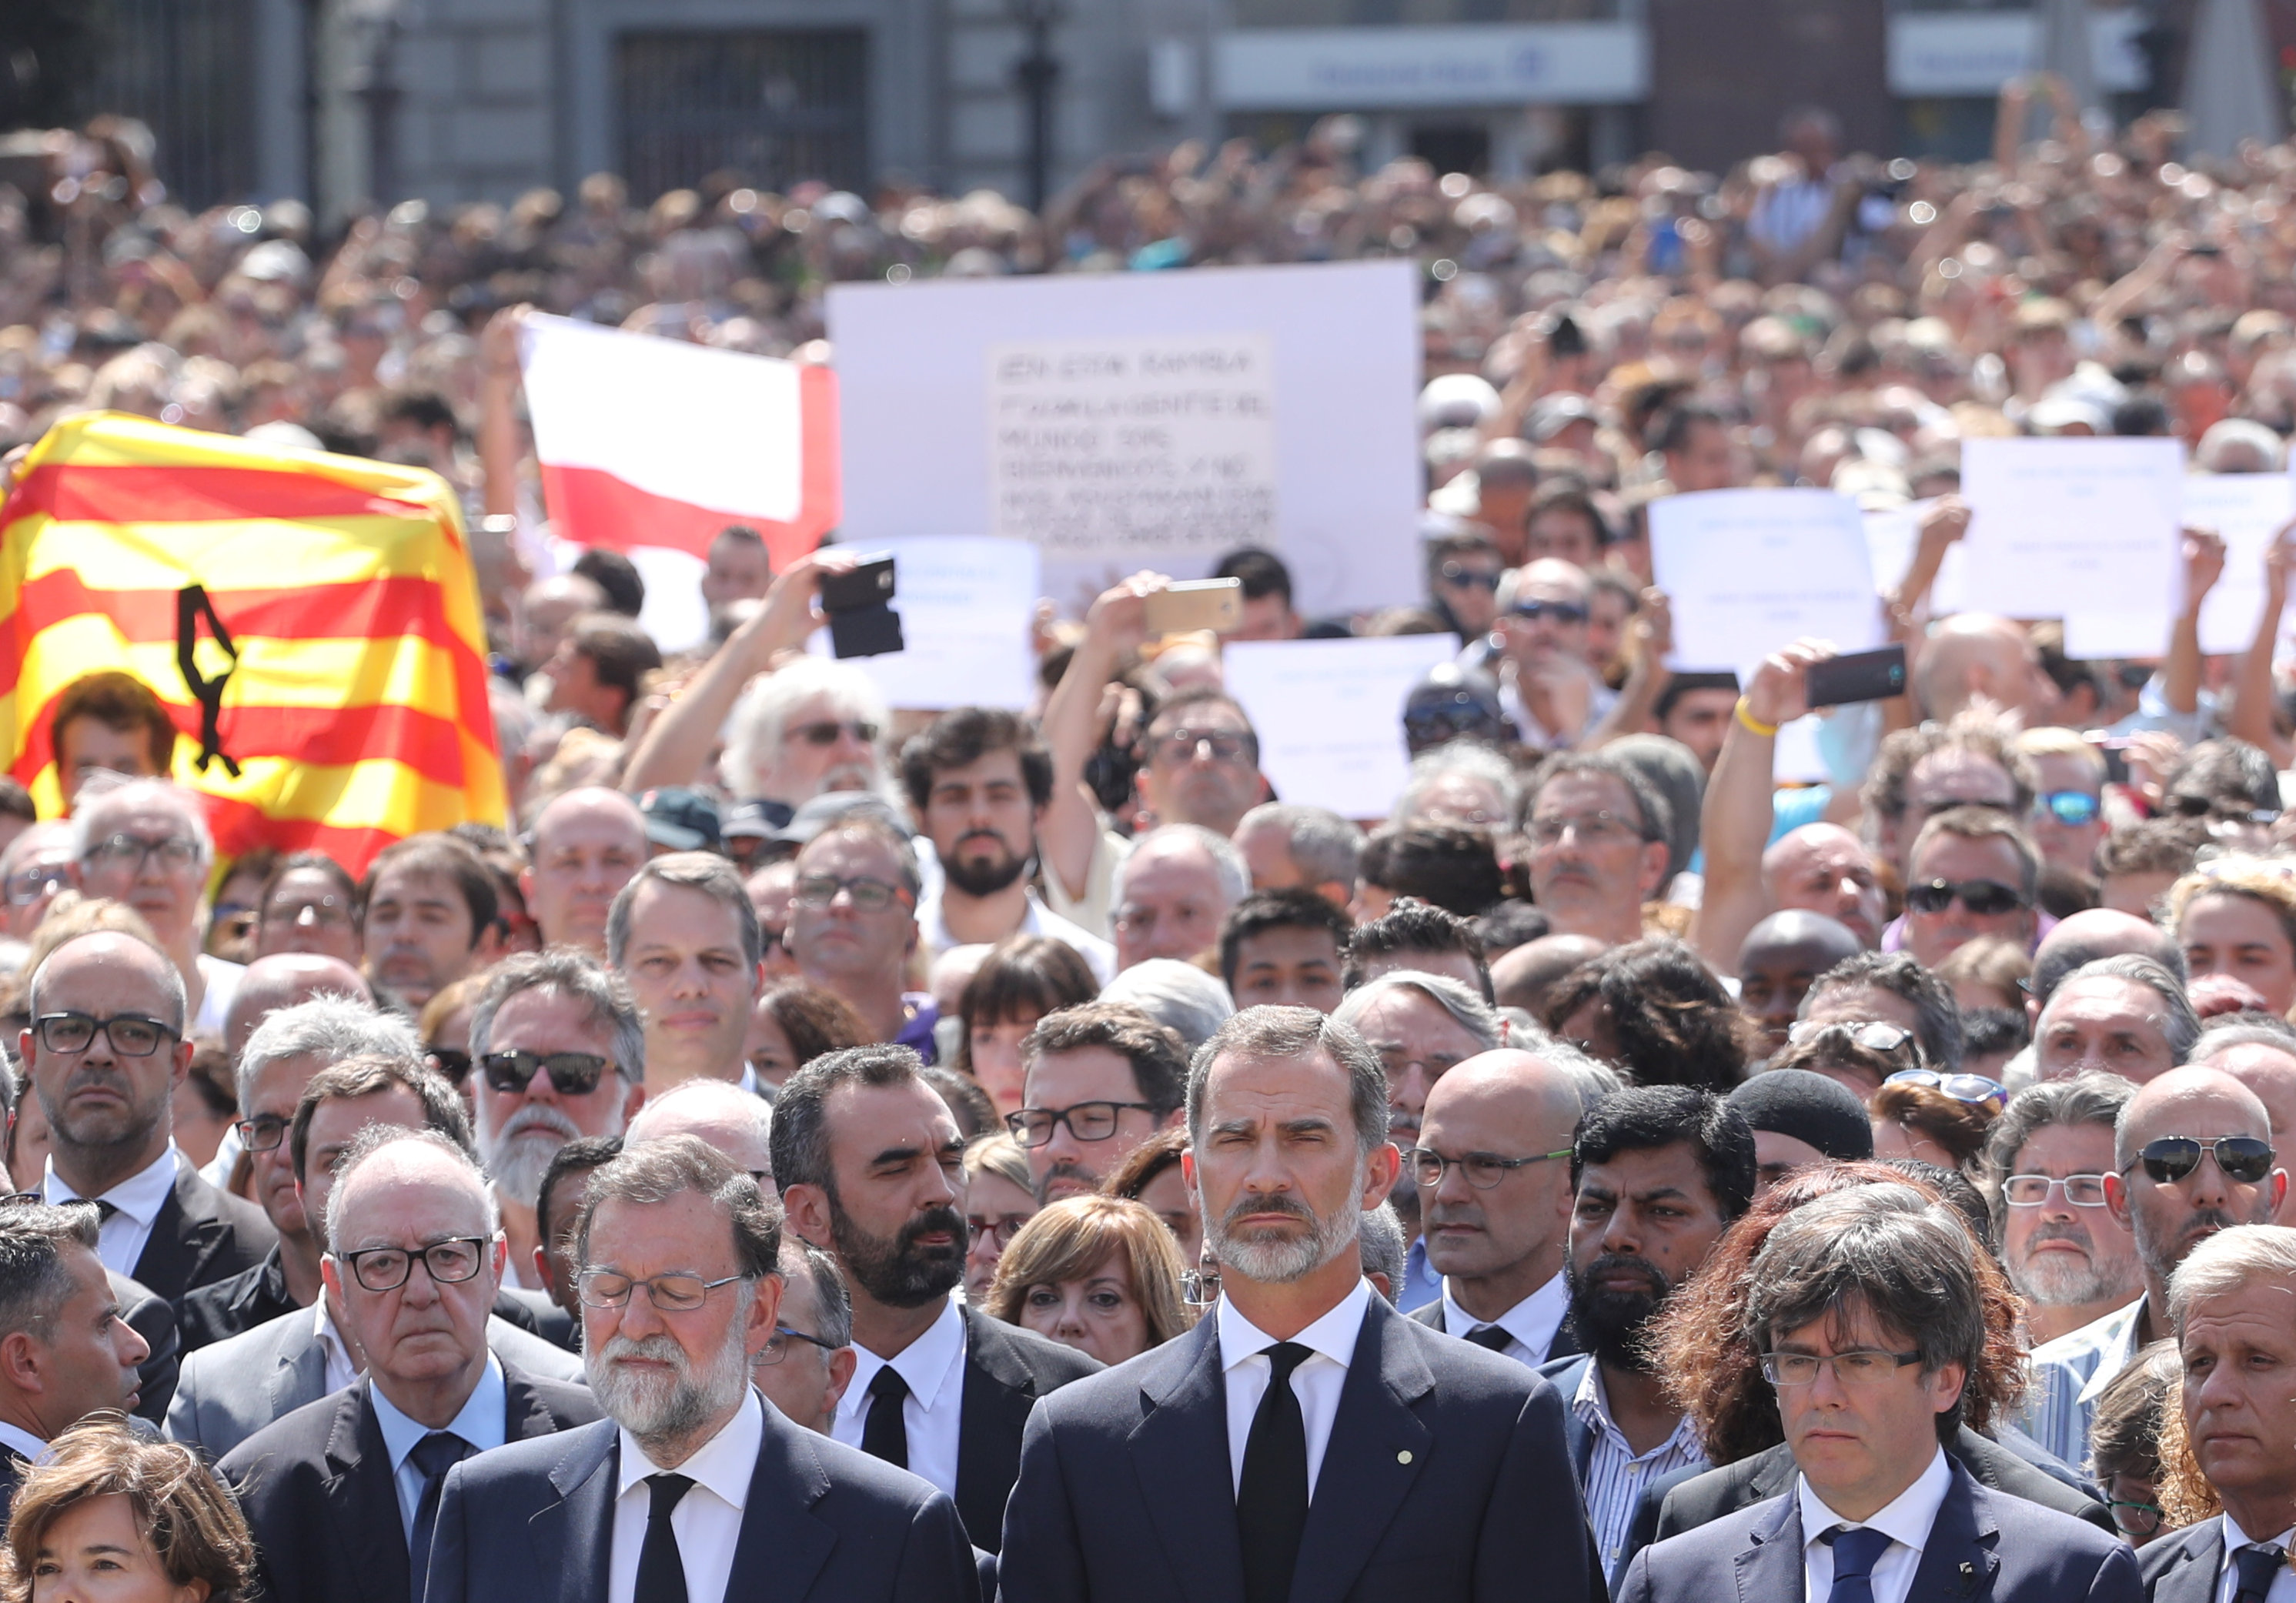 REFILE - CORRECTING GRAMMAR King Felipe of Spain stands between Prime Minister Mariano Rajoy and President of the Generalitat of Catalonia Carles Puigdemont as they observe a minute of silence in Placa de Catalunya, a day after a van crashed into pedestrians at Las Ramblas in Barcelona, Spain August 18, 2017. (REUTERS/Sergio Perez)